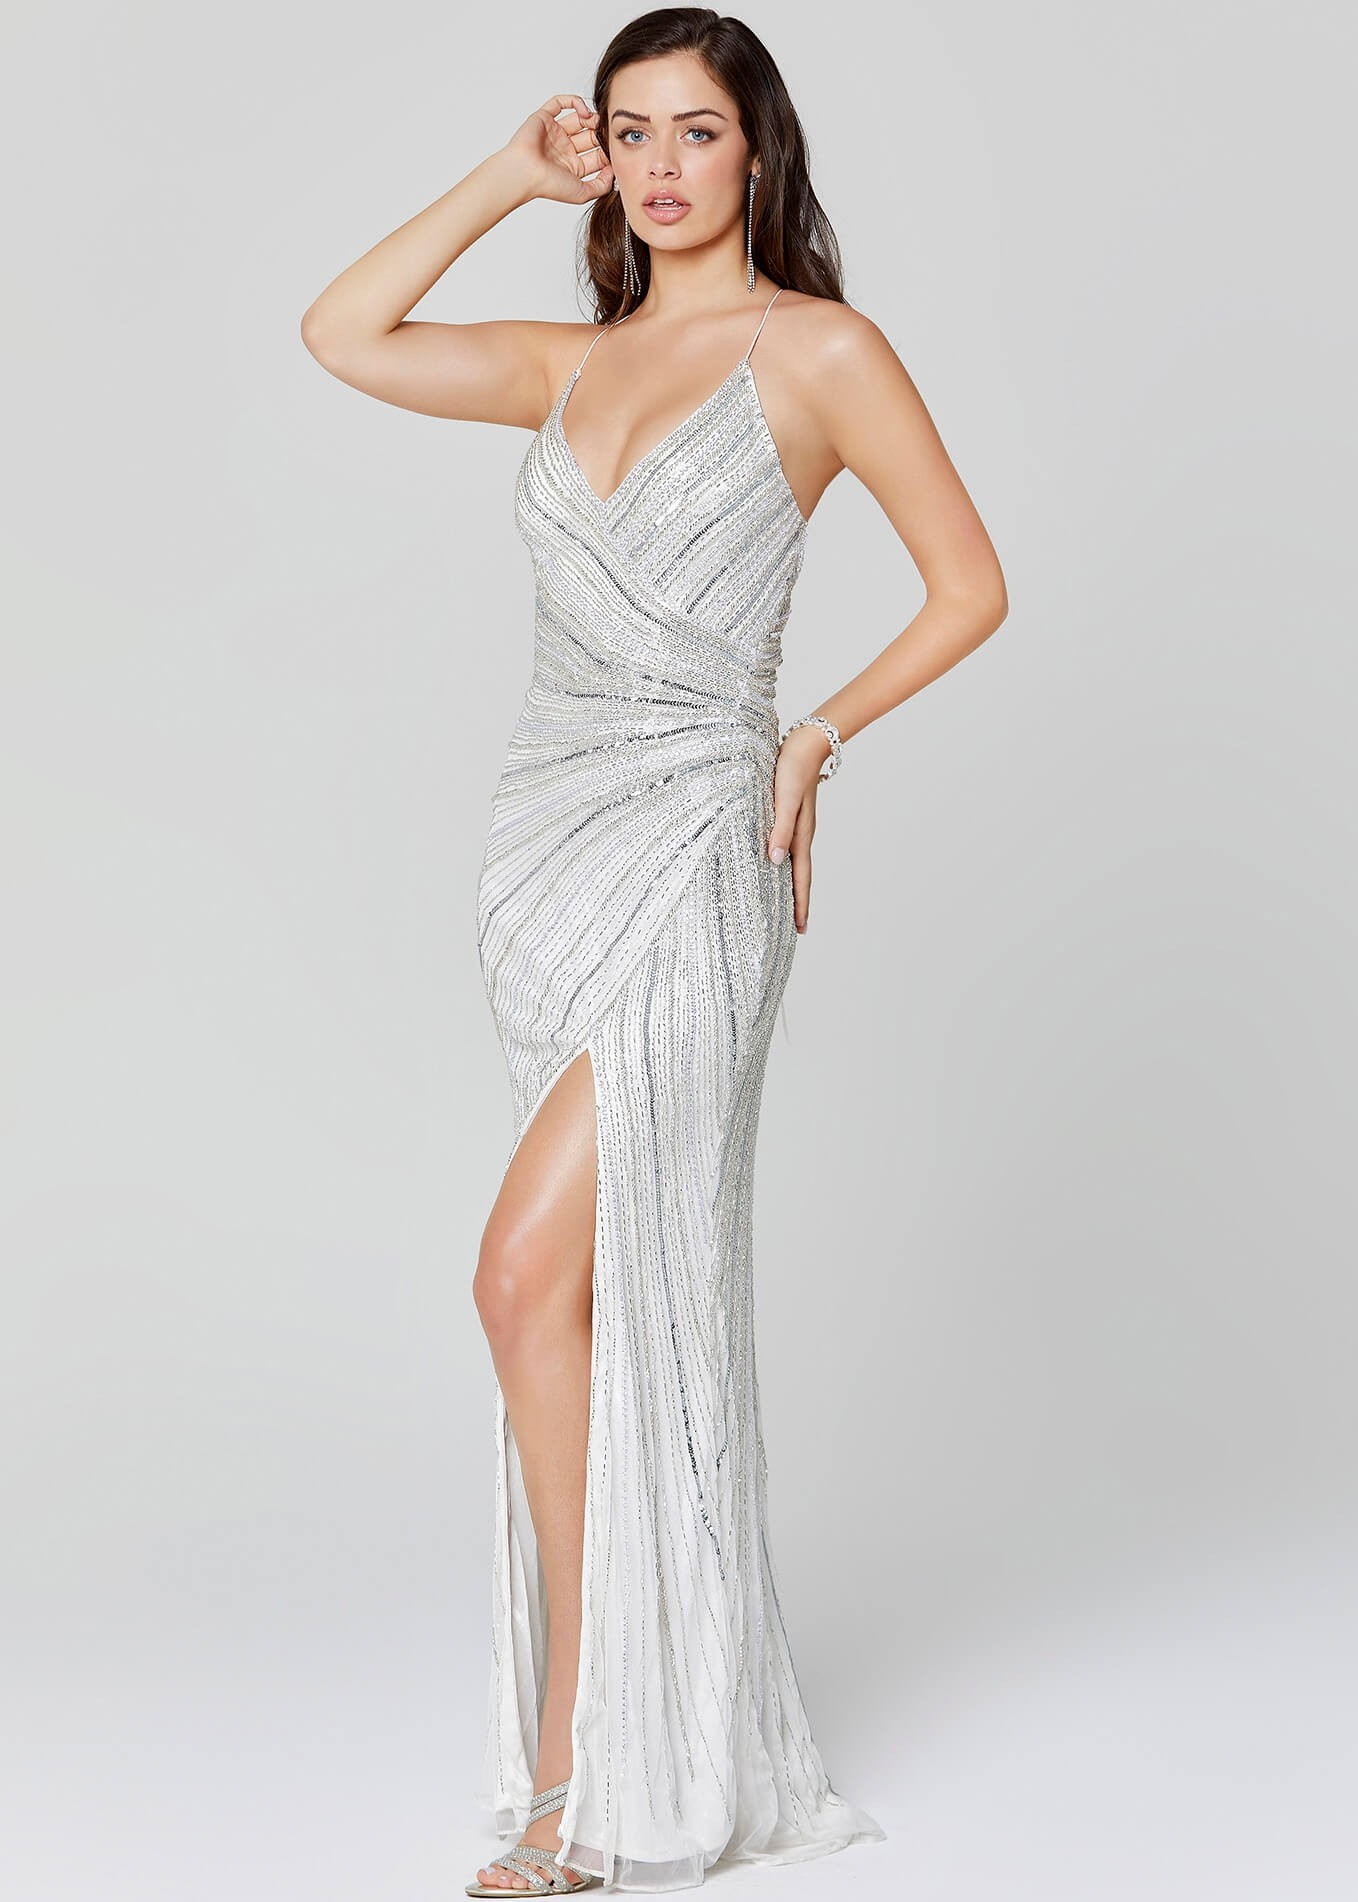 Primavera Couture 3403 Beaded Gown with Slit